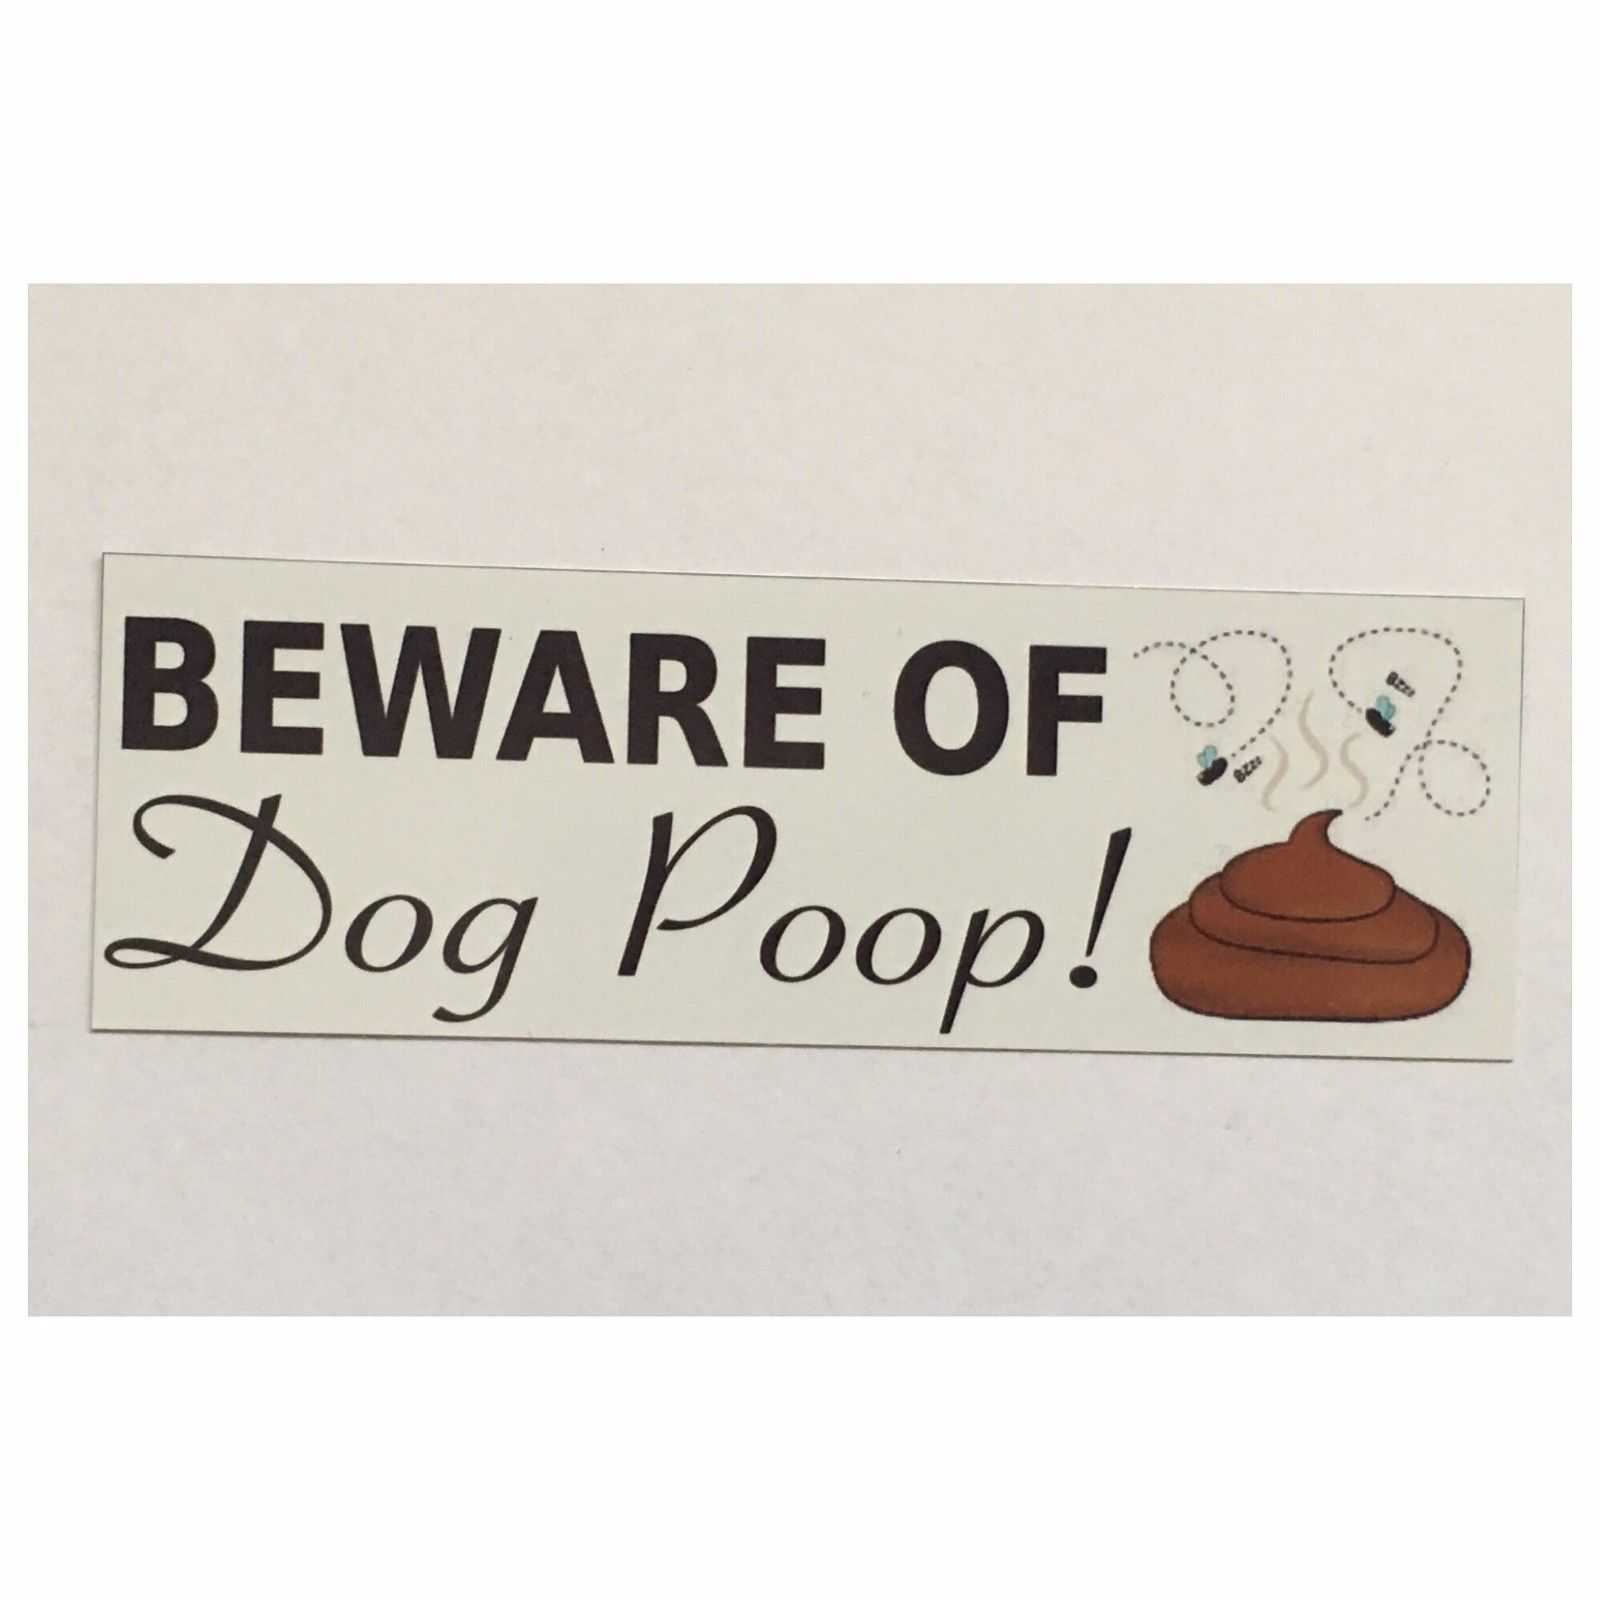 Beware Of Dog Poop Poo Sign Plaques & Signs The Renmy Store